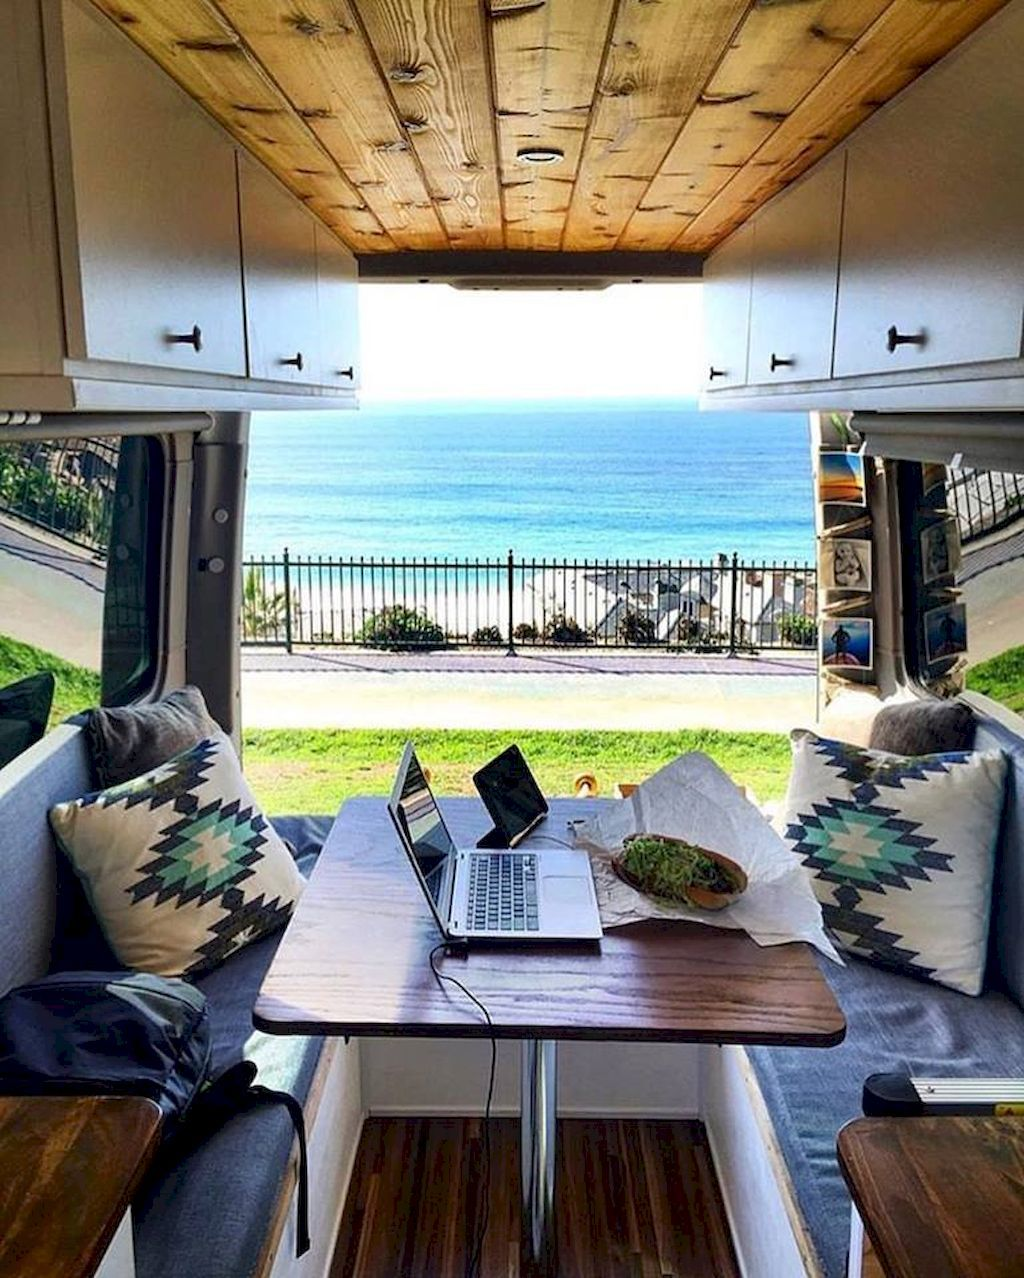 best rv camper van interior decorating ideas homespecially also projects to try rh pinterest